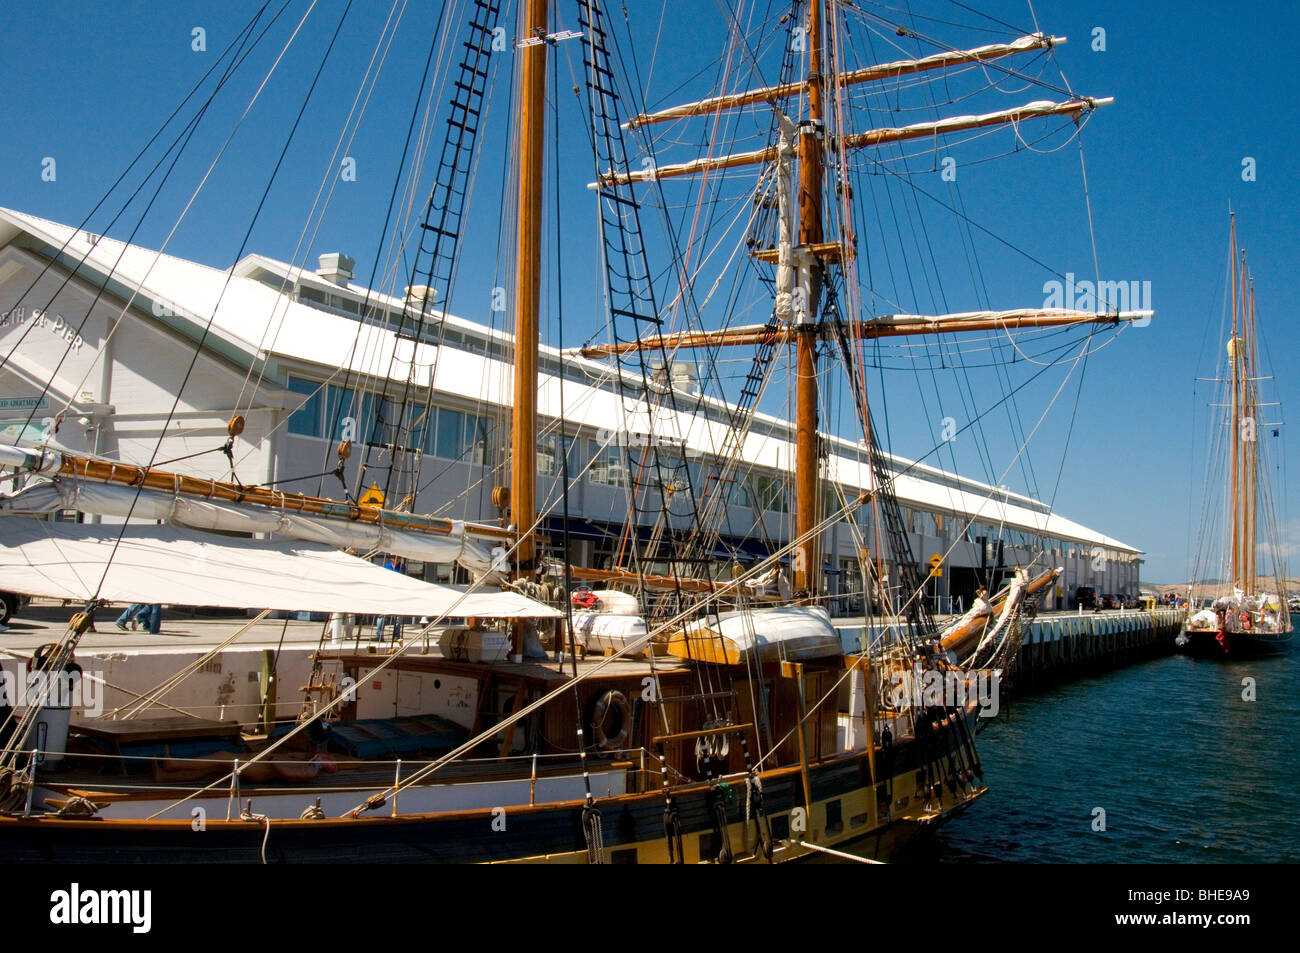 Sailing ships moored at Elizabeth Street Pier, which now houses Somerset on the Pier Apartments. Hobart, Tasmania, - Stock Image